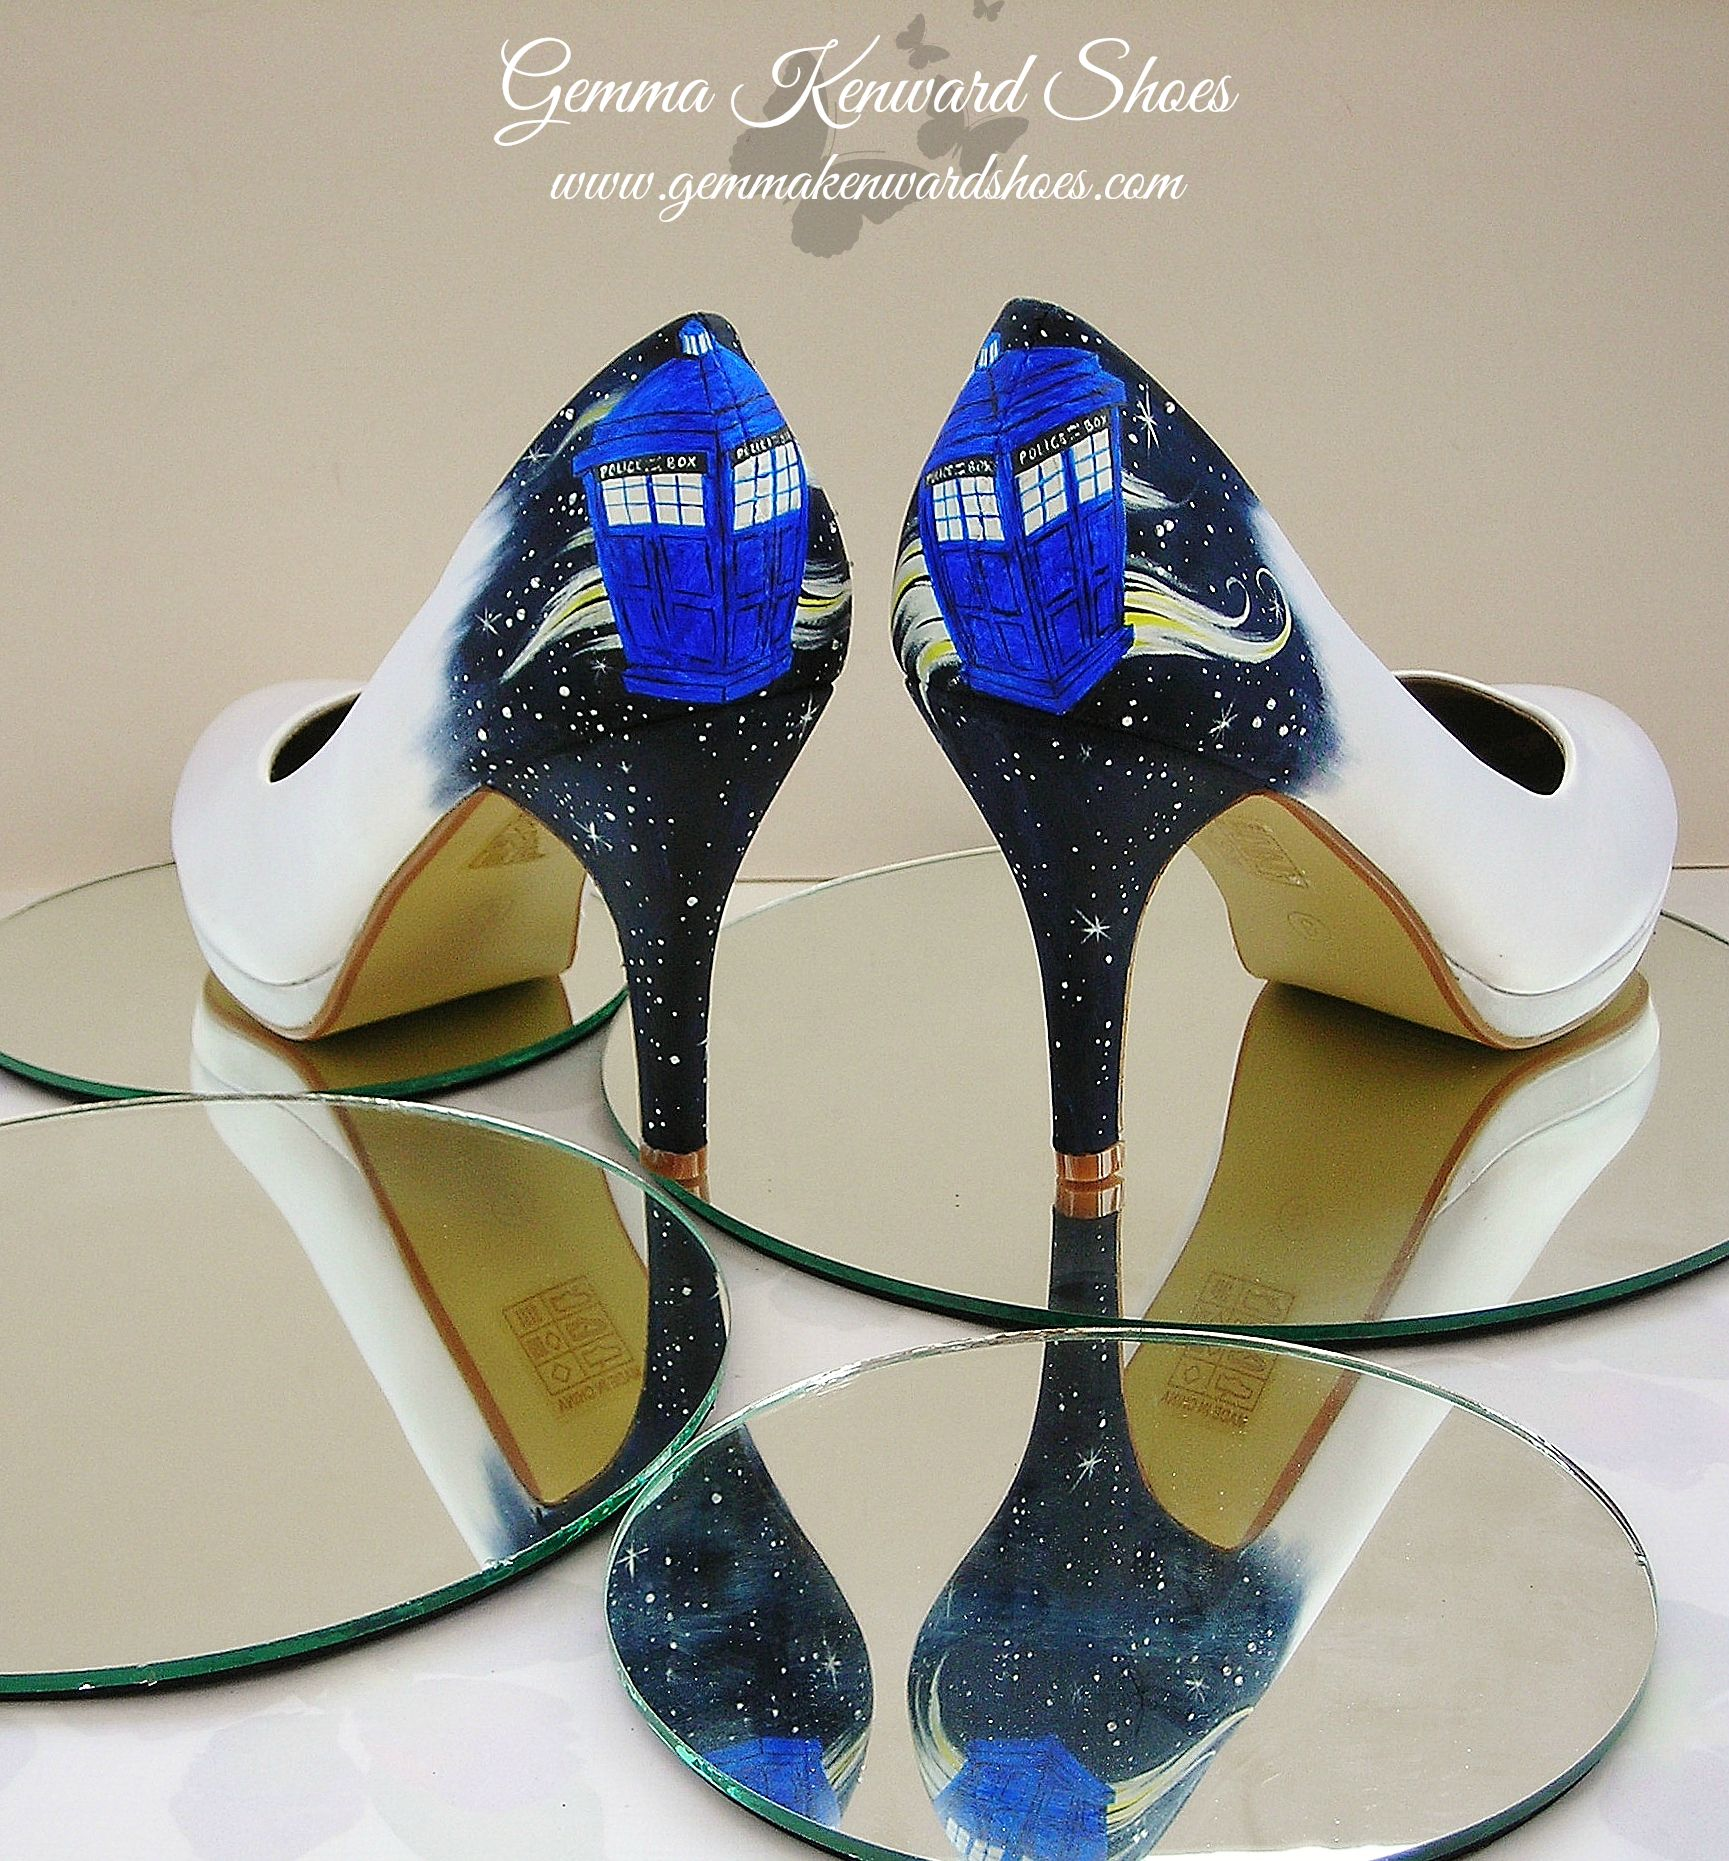 Silk Rainbow Club Wedding Shoes hand painted with a Tardis and a galaxy for a Doctor Who themed wedding